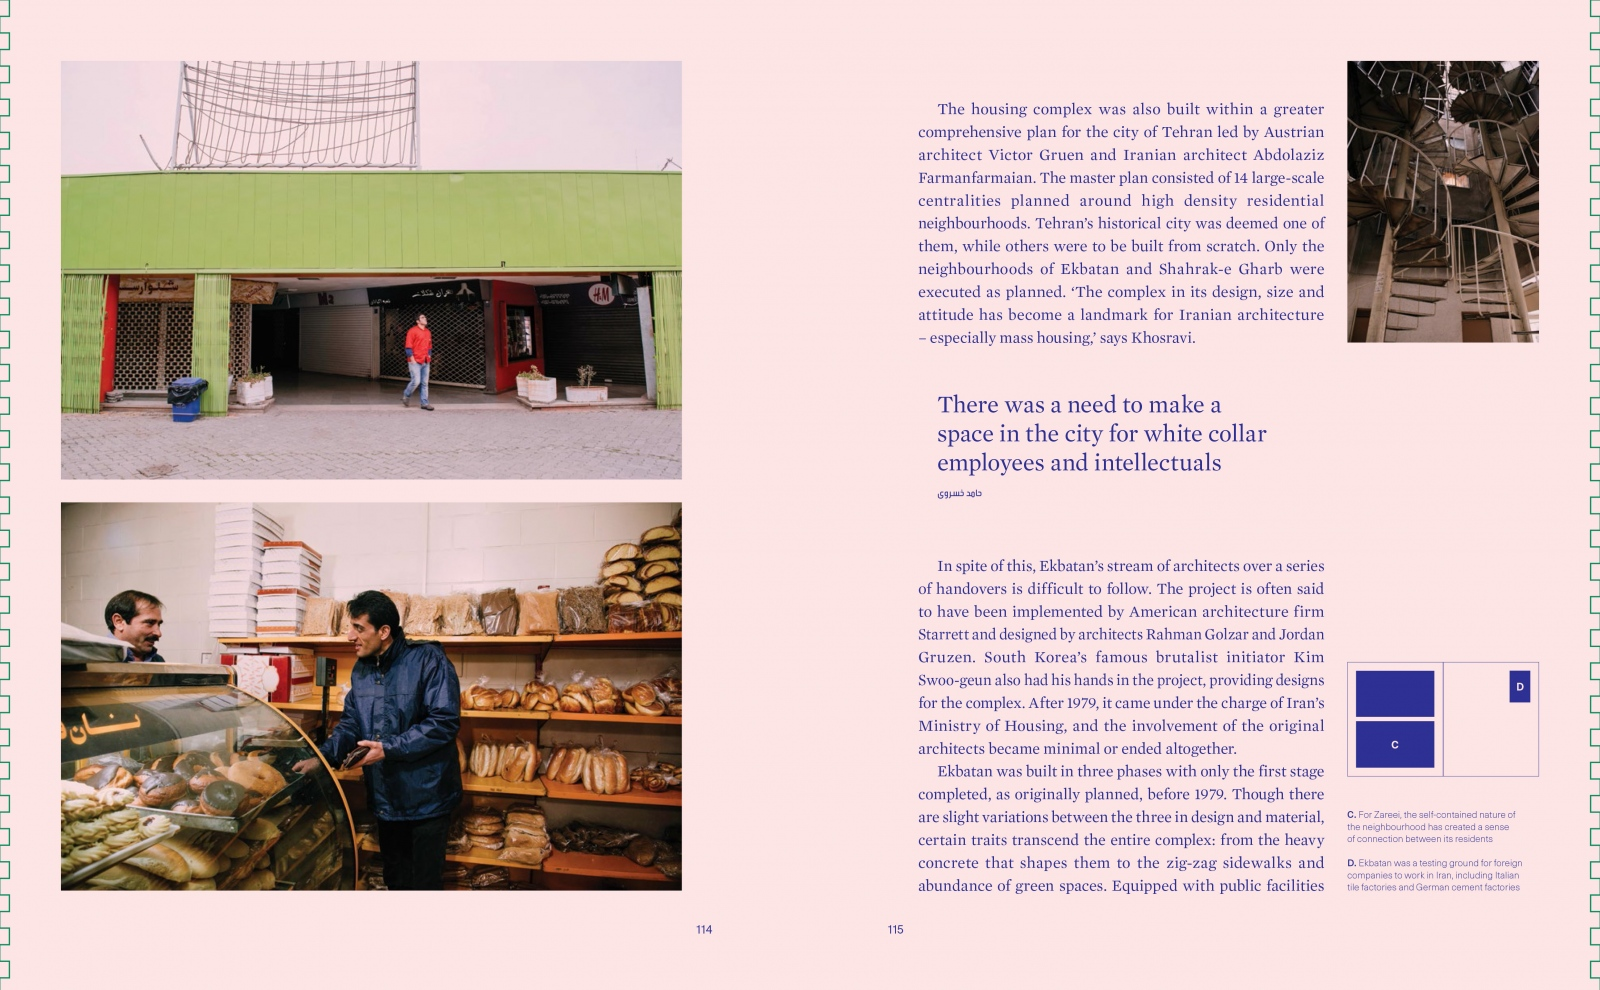 Art and Documentary Photography - Loading BrownBook_-_Ekbatan_Town-3.jpg